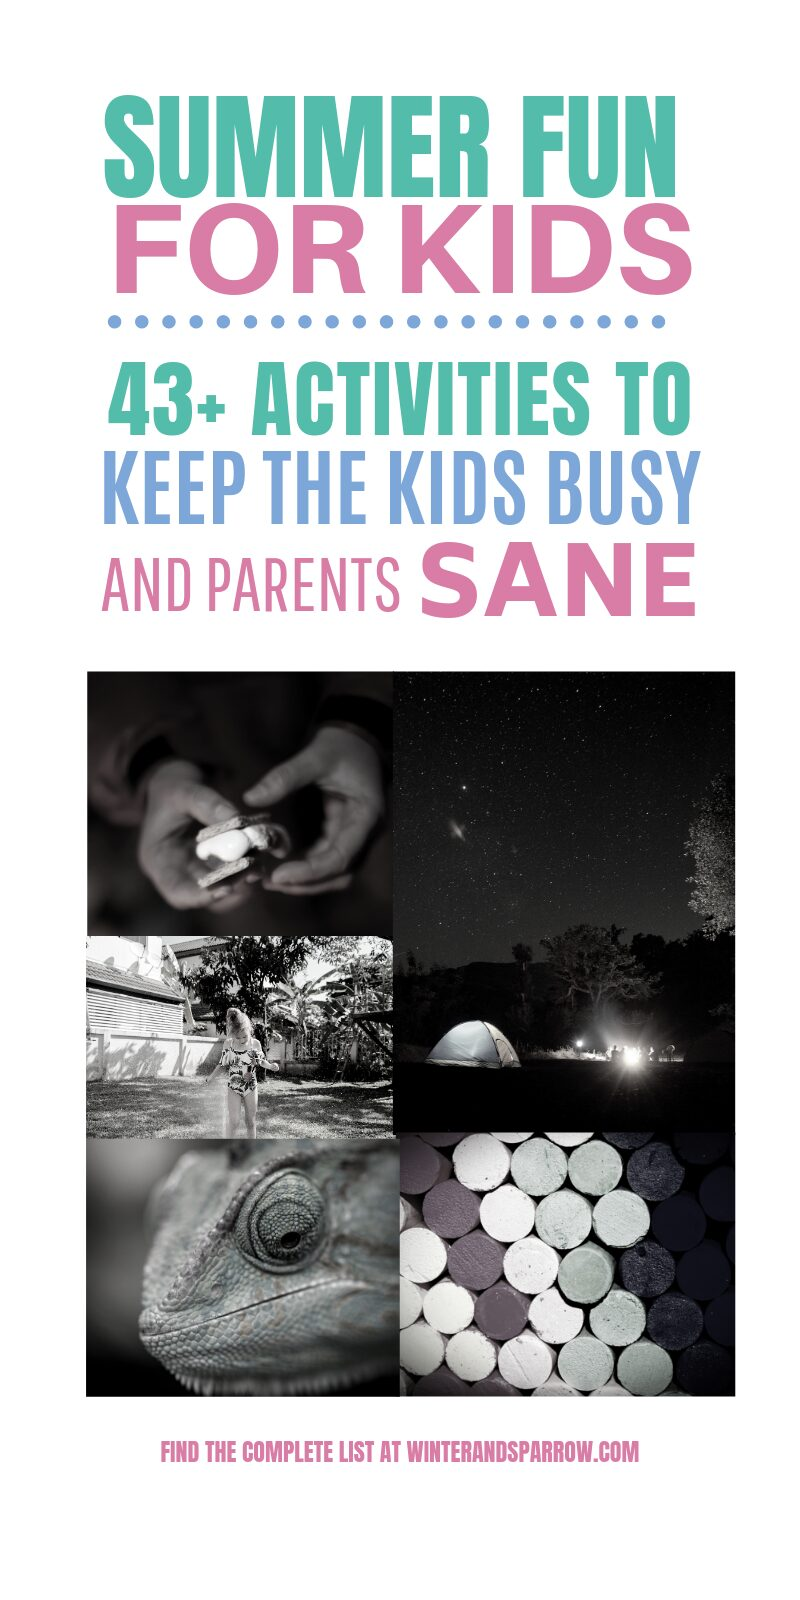 Cheap Summer Fun For Kids: 43 Activities To Keep the Kids Busy (and Parents Sane) | winterandsparrow.com #summerfun #summeractivities #summeractivitiesforkids #cheapsummerfun